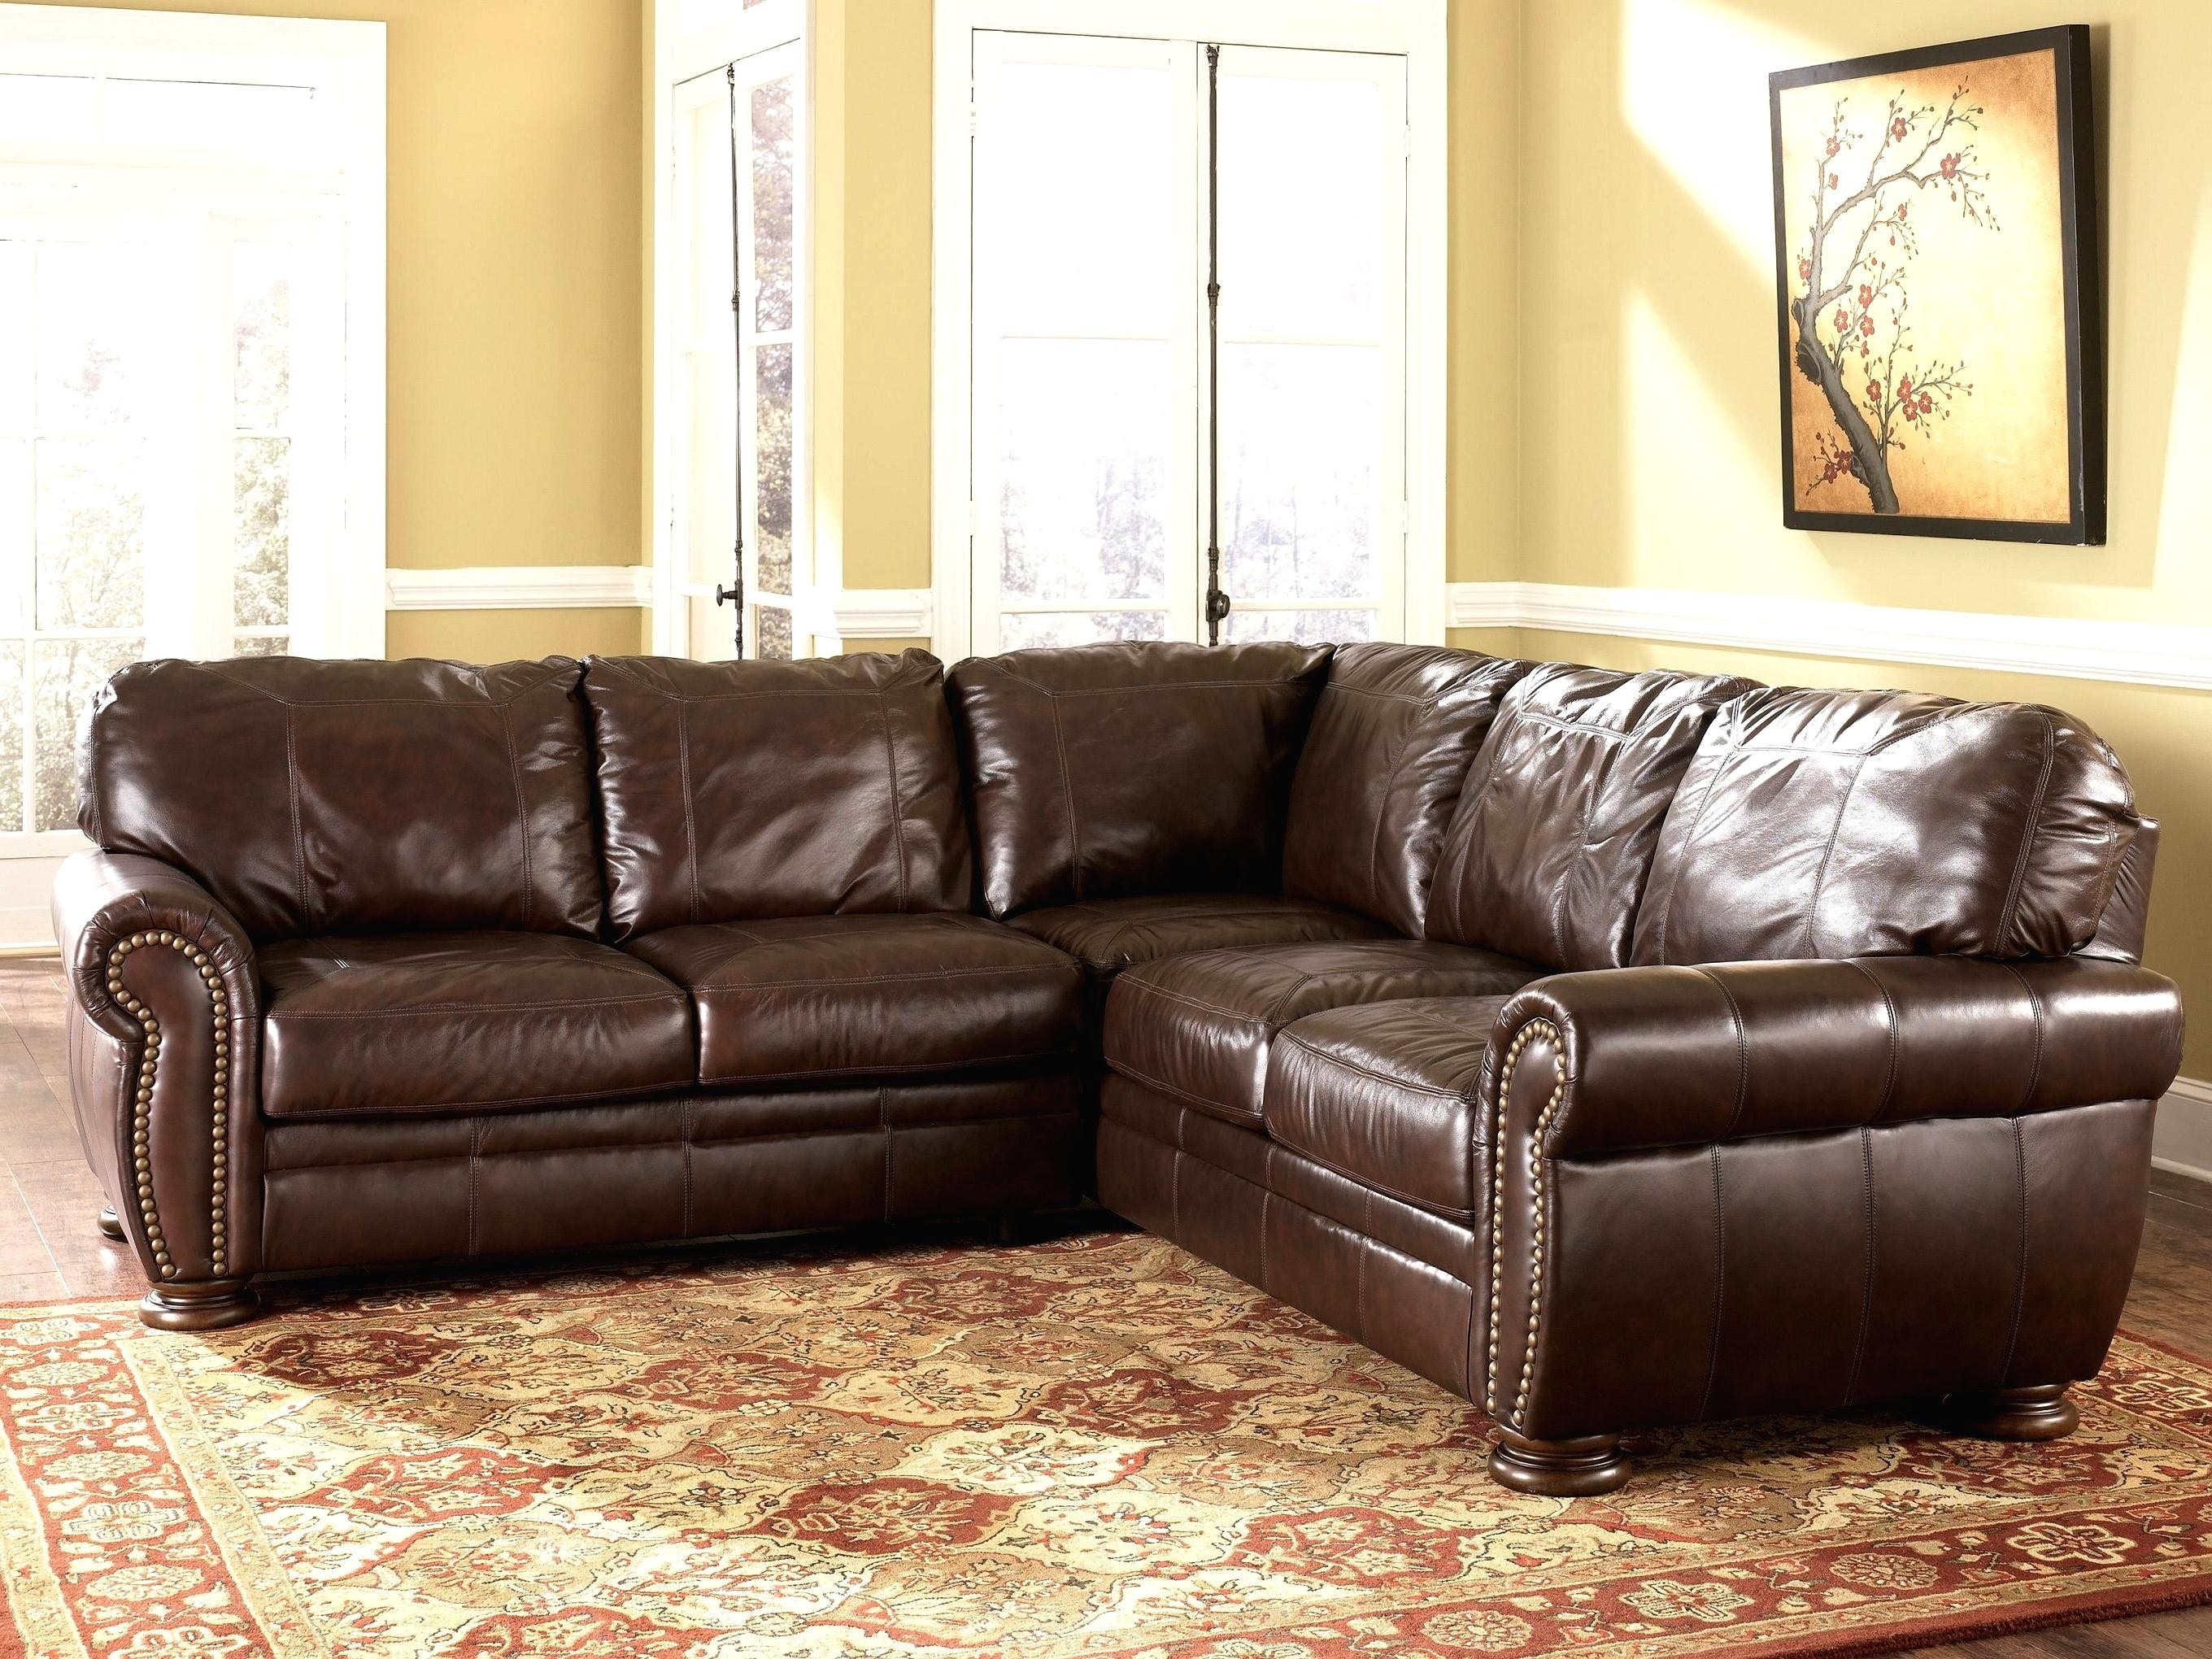 Used Sectional Sofas | Used Sectional Sofas Craigslist | Used pertaining to Used Sectional Sofas (Image 9 of 10)